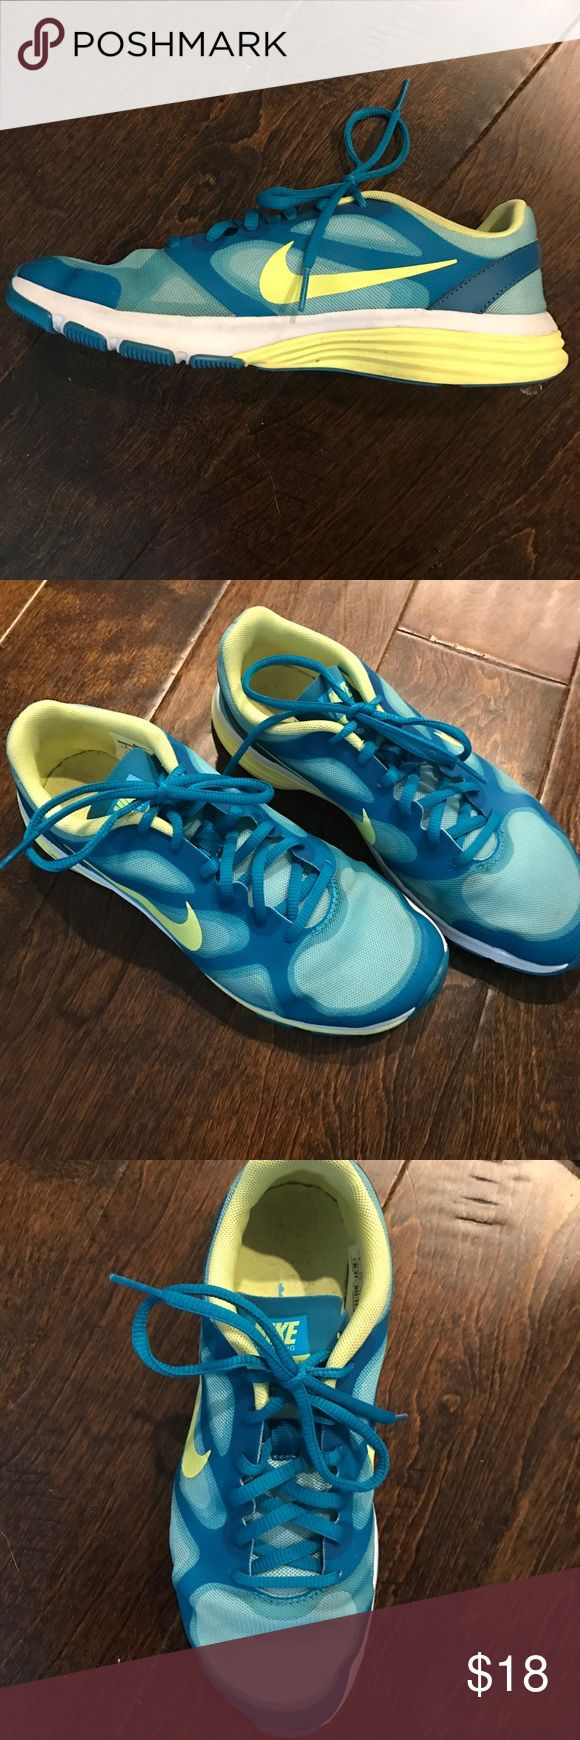 Nike tennis shoes Hardly worn Nike trainers. OPEN TO ALL OFFERS Nike Shoes Sneakers